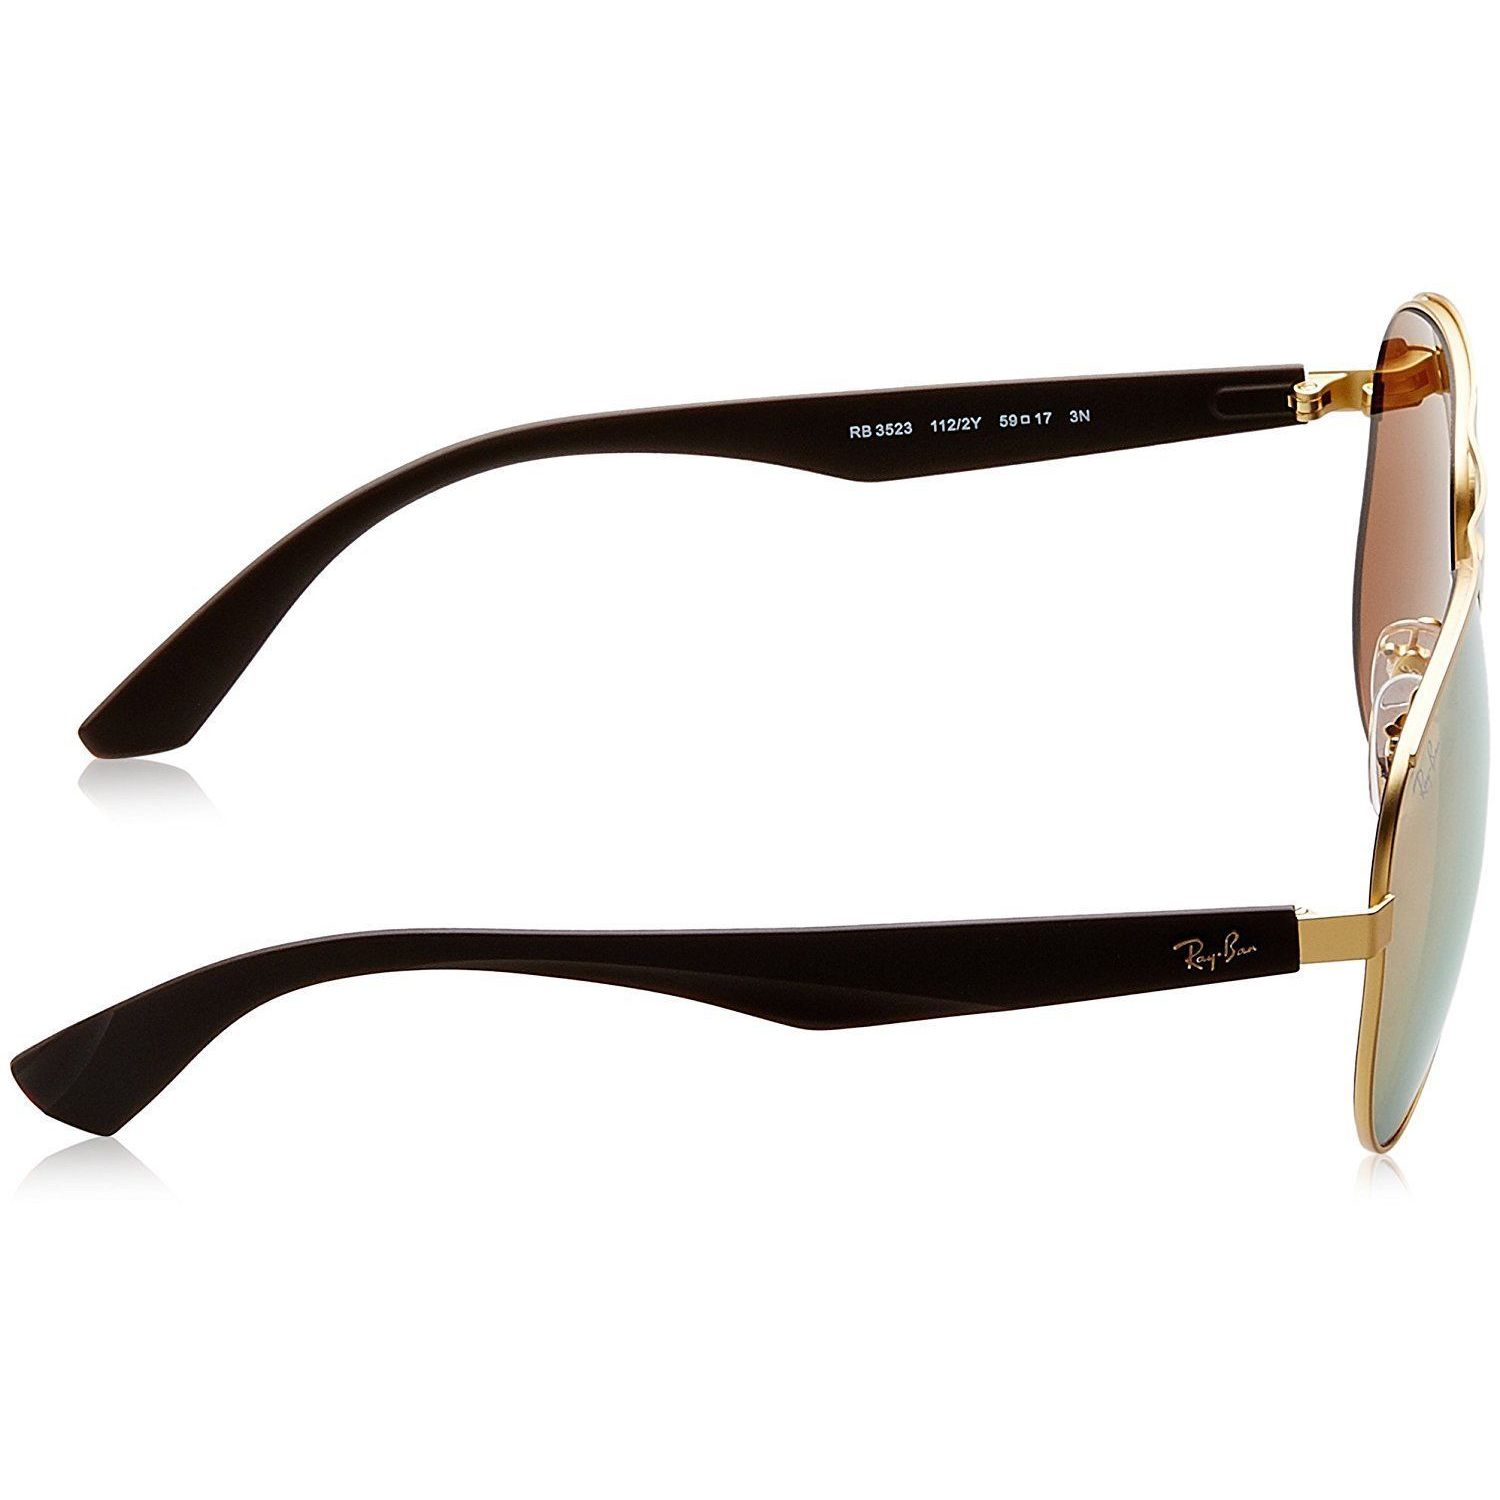 5905fa62d2 Shop Ray Ban Mens RB3523 112 2Y Gold Metal Cateye Sunglasses - Brown - Free  Shipping Today - Overstock - 13467513